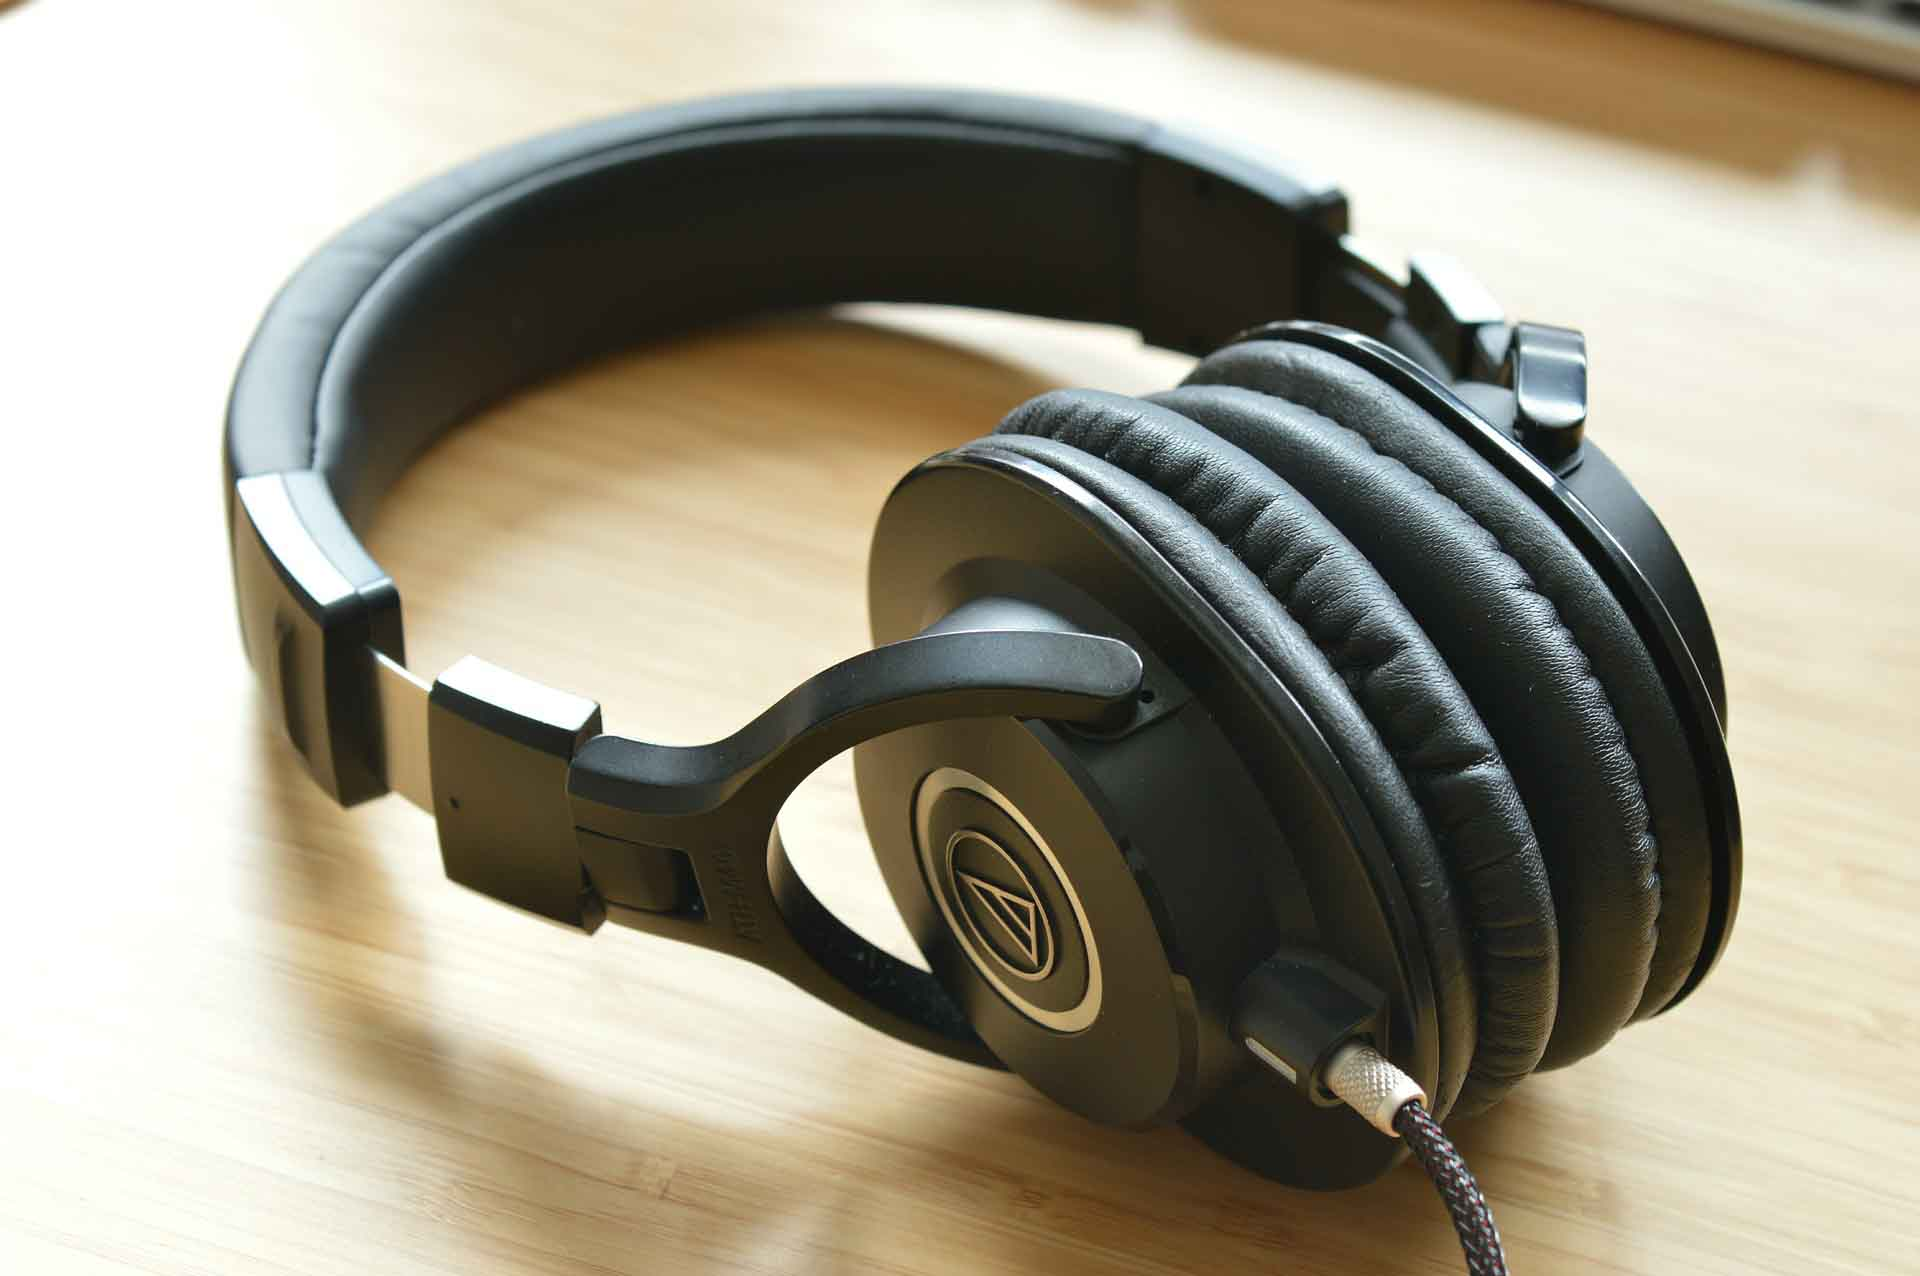 The best studio headphones for home recording